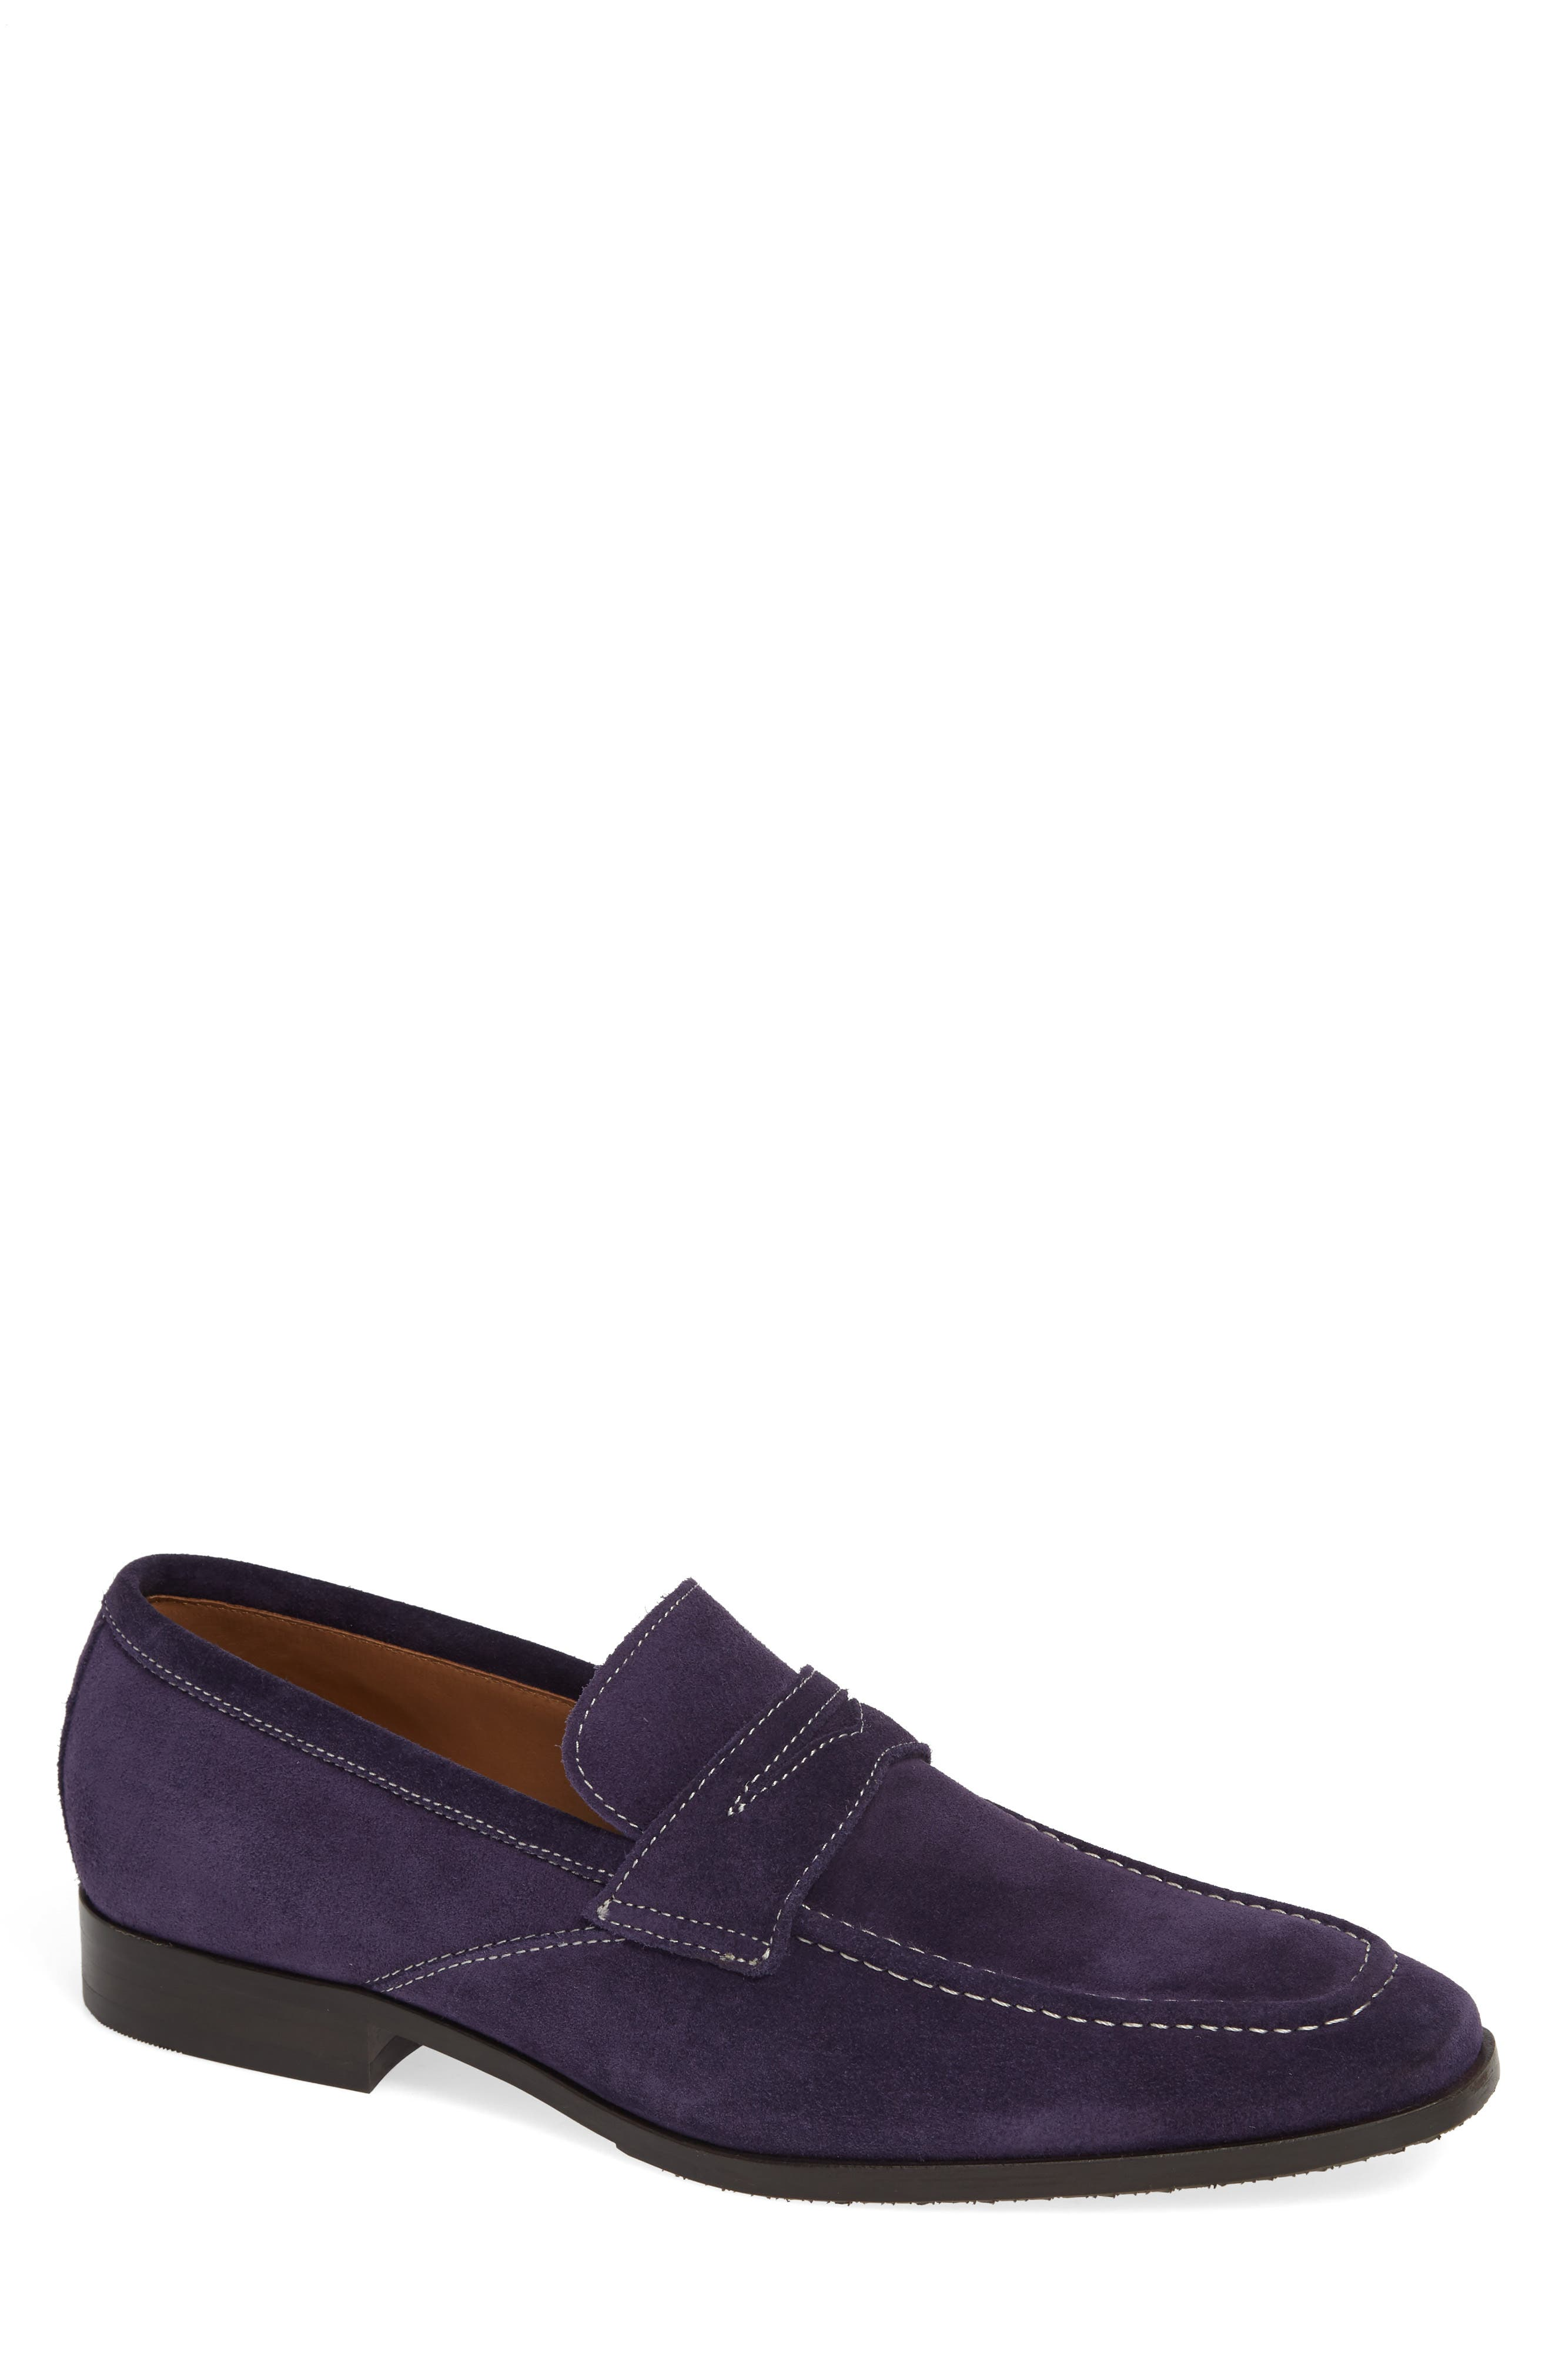 ROBERT TALBOTT Nicasio Apron Toe Penny Loafer in Purple Suede